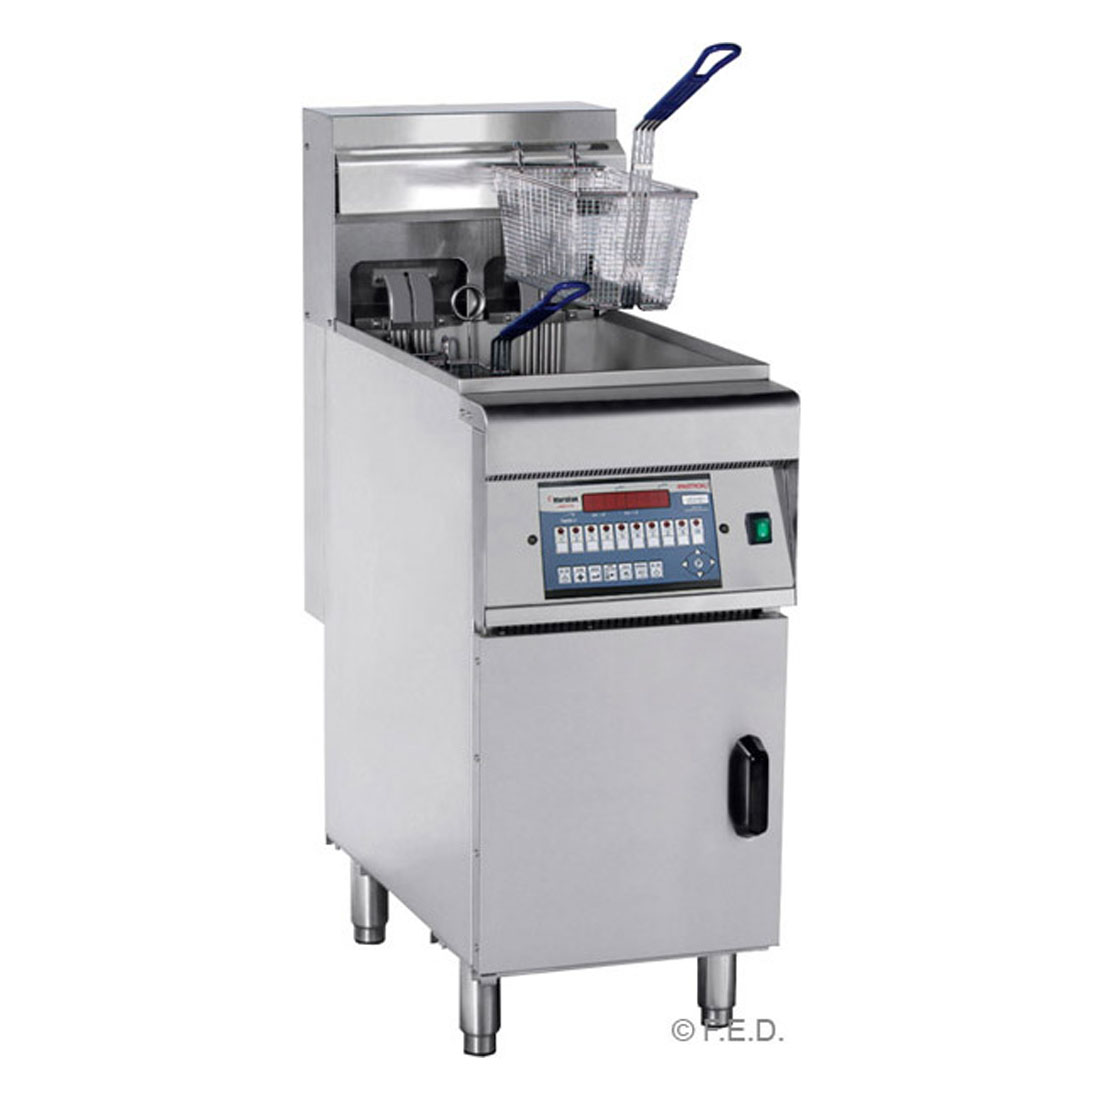 DZL-28 - COMPUTERISED ELECTRIC FRYER with COLD ZONE